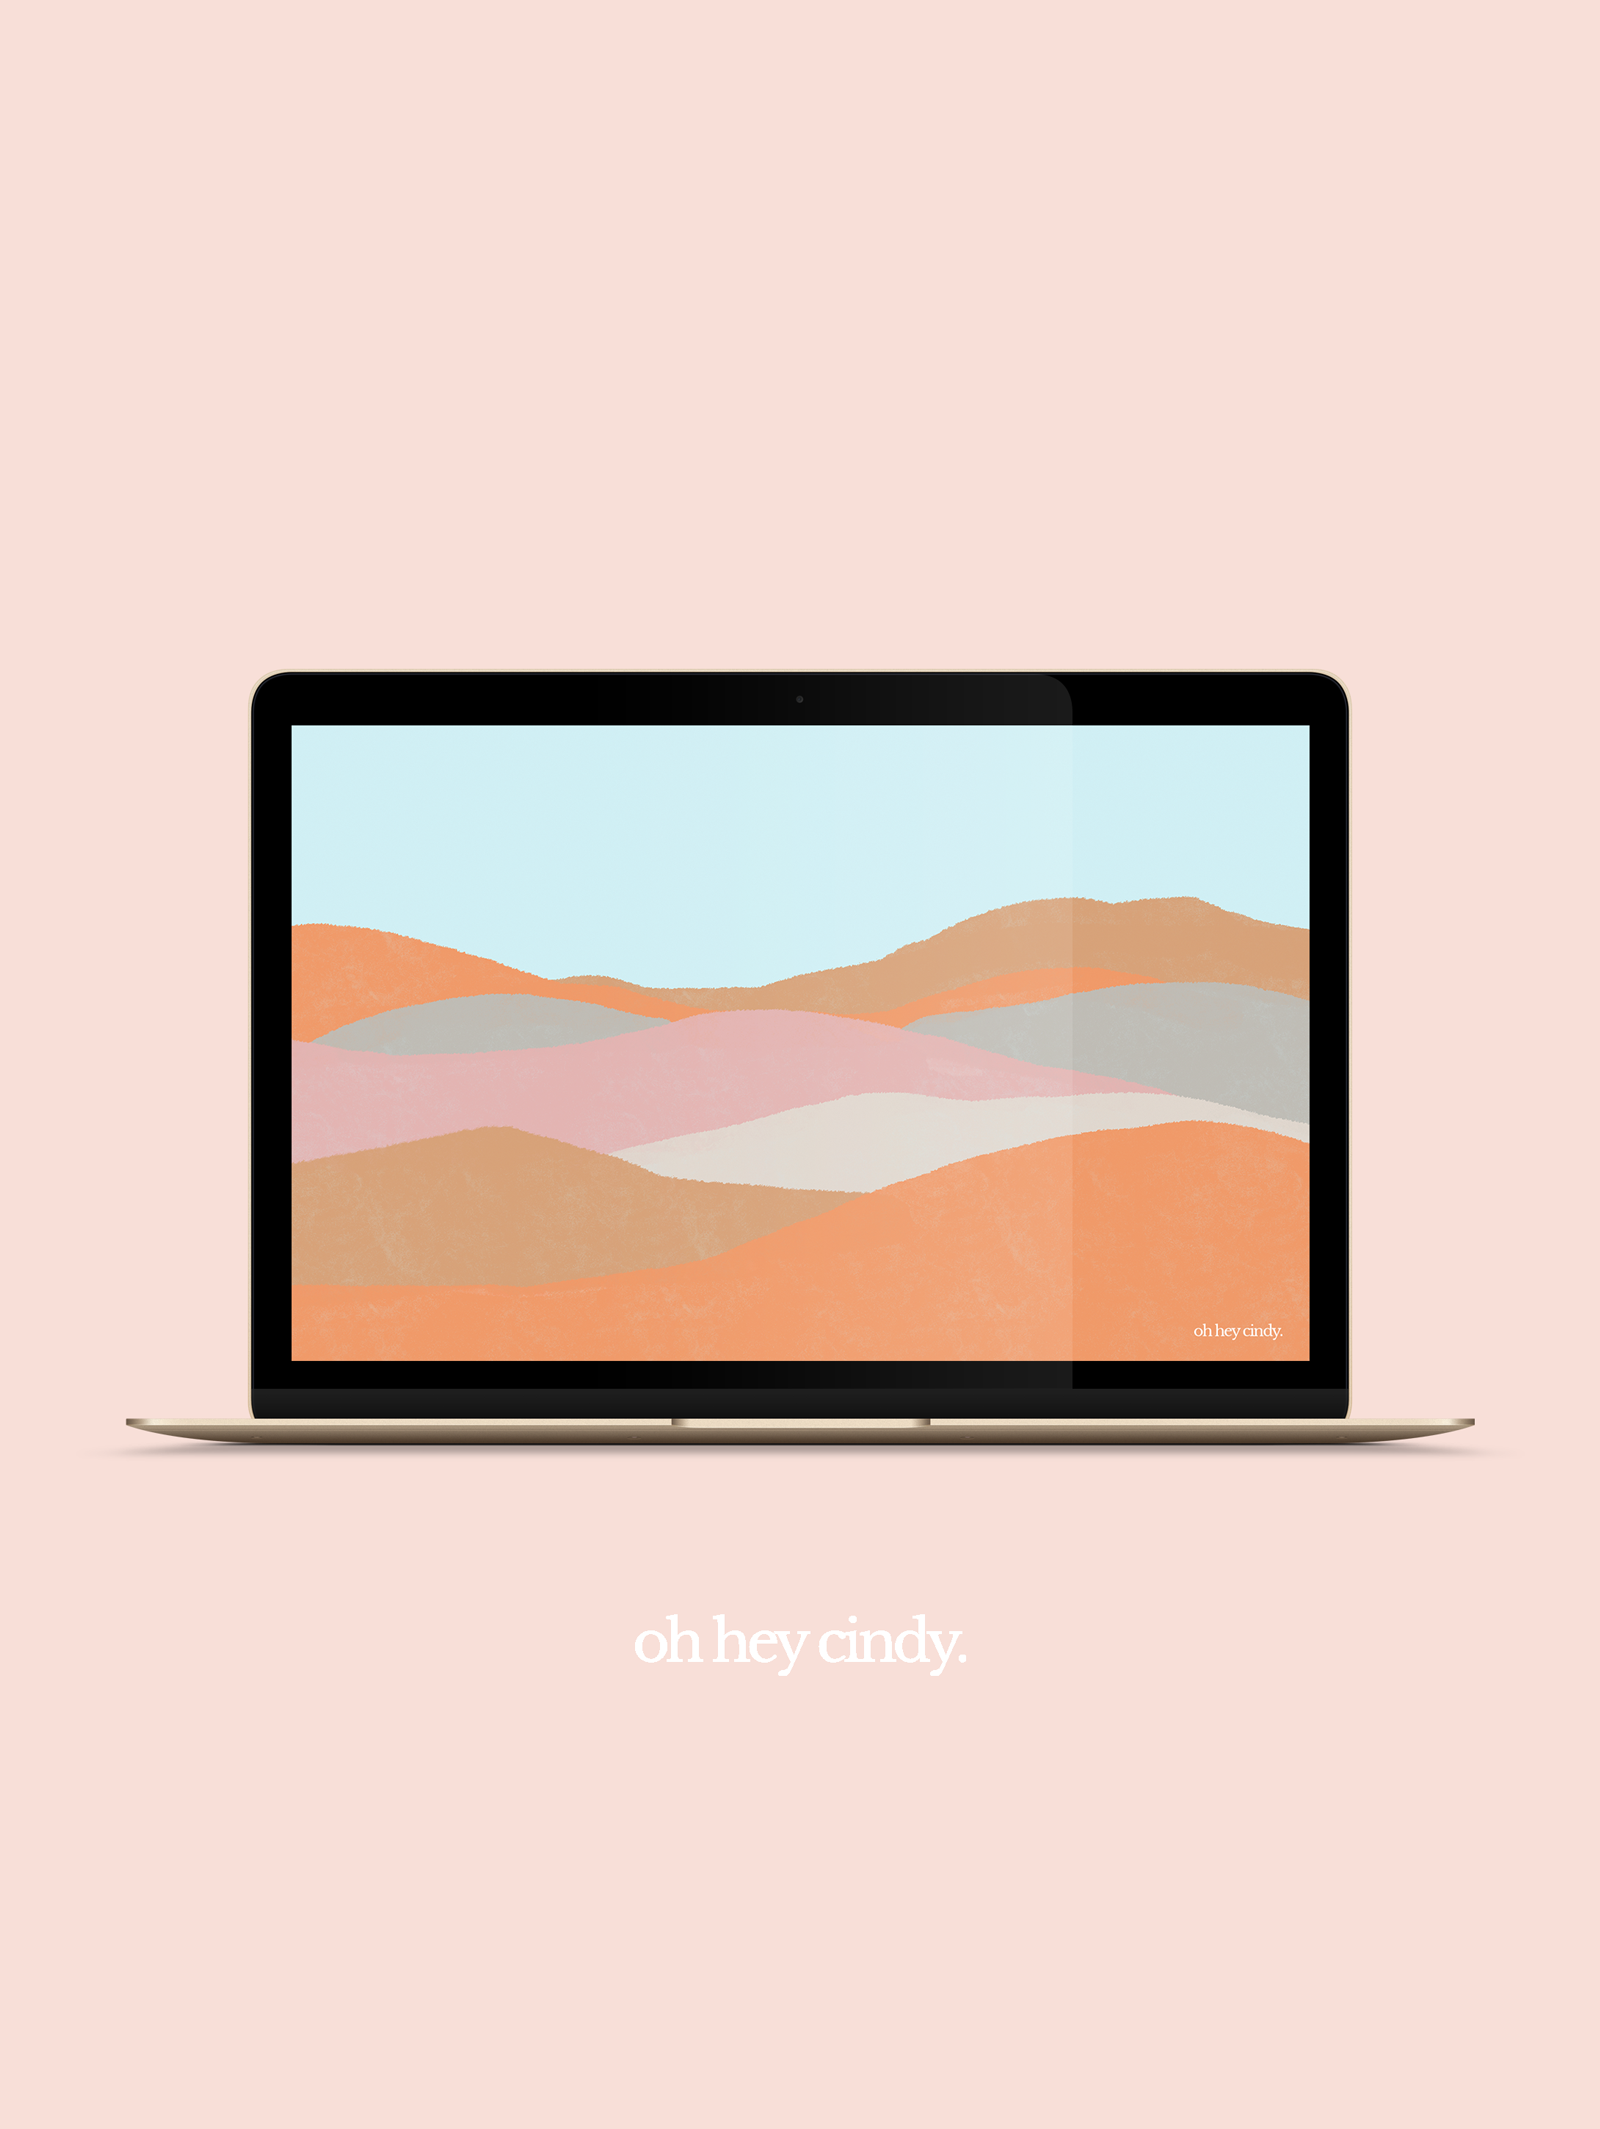 http://www.ohheycindy.com/wp-content/uploads/2020/06/Rusty-Landscape-Desktop-Background-Free-Download.png